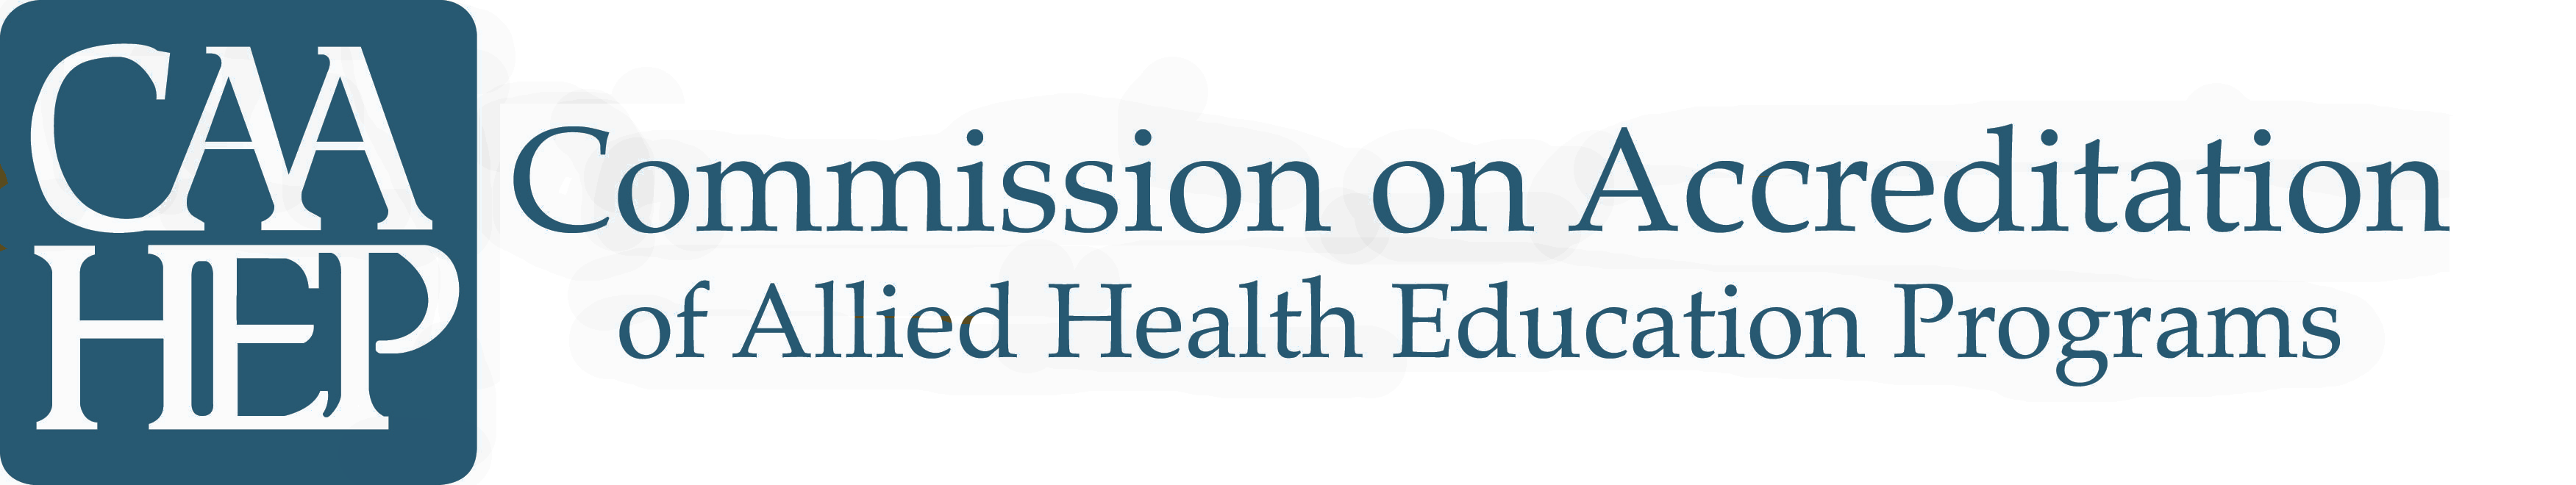 Commission on Accreditation of Allied Health Education Programs